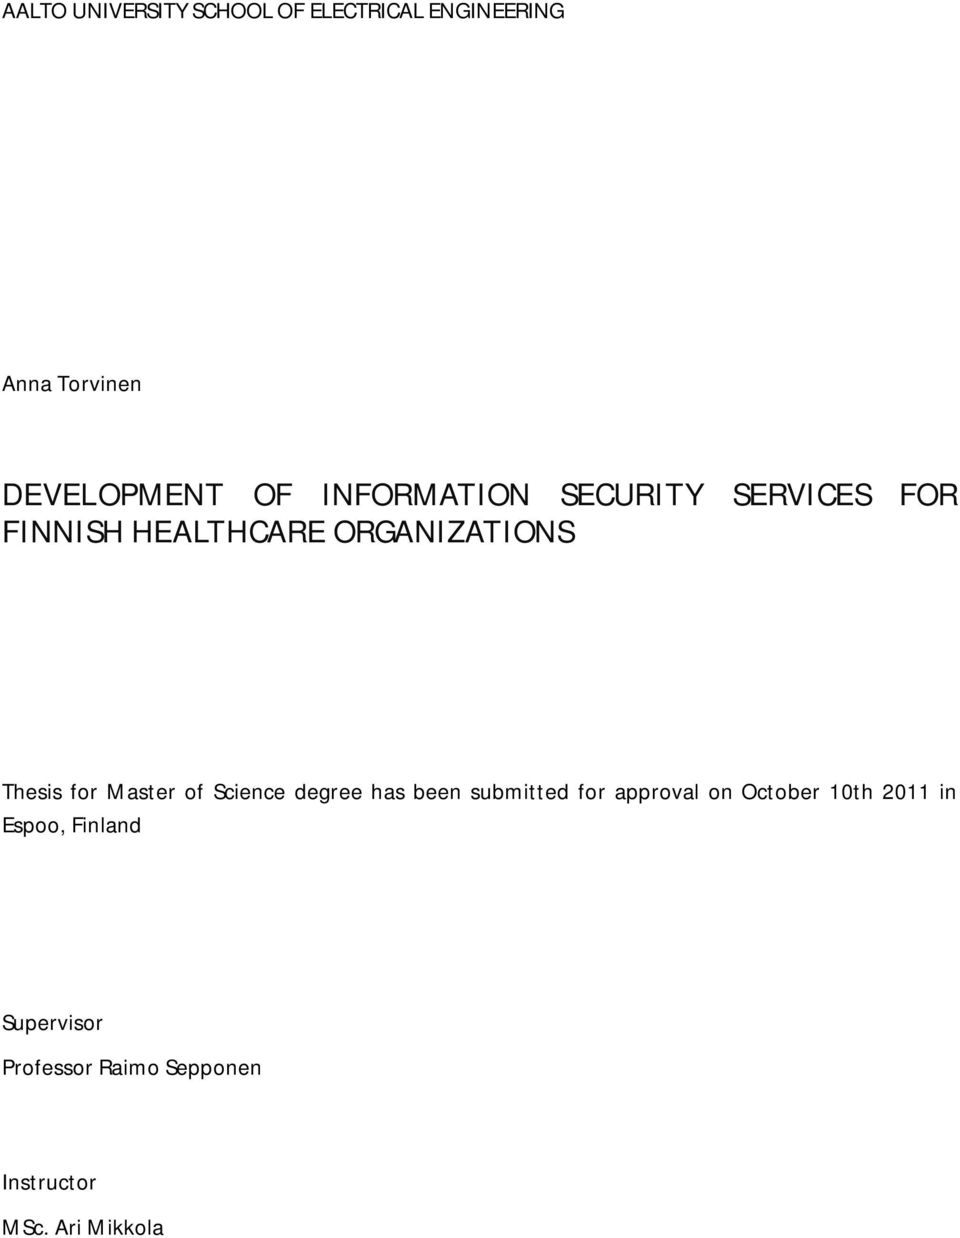 Master of Science degree has been submitted for approval on October 10th 2011